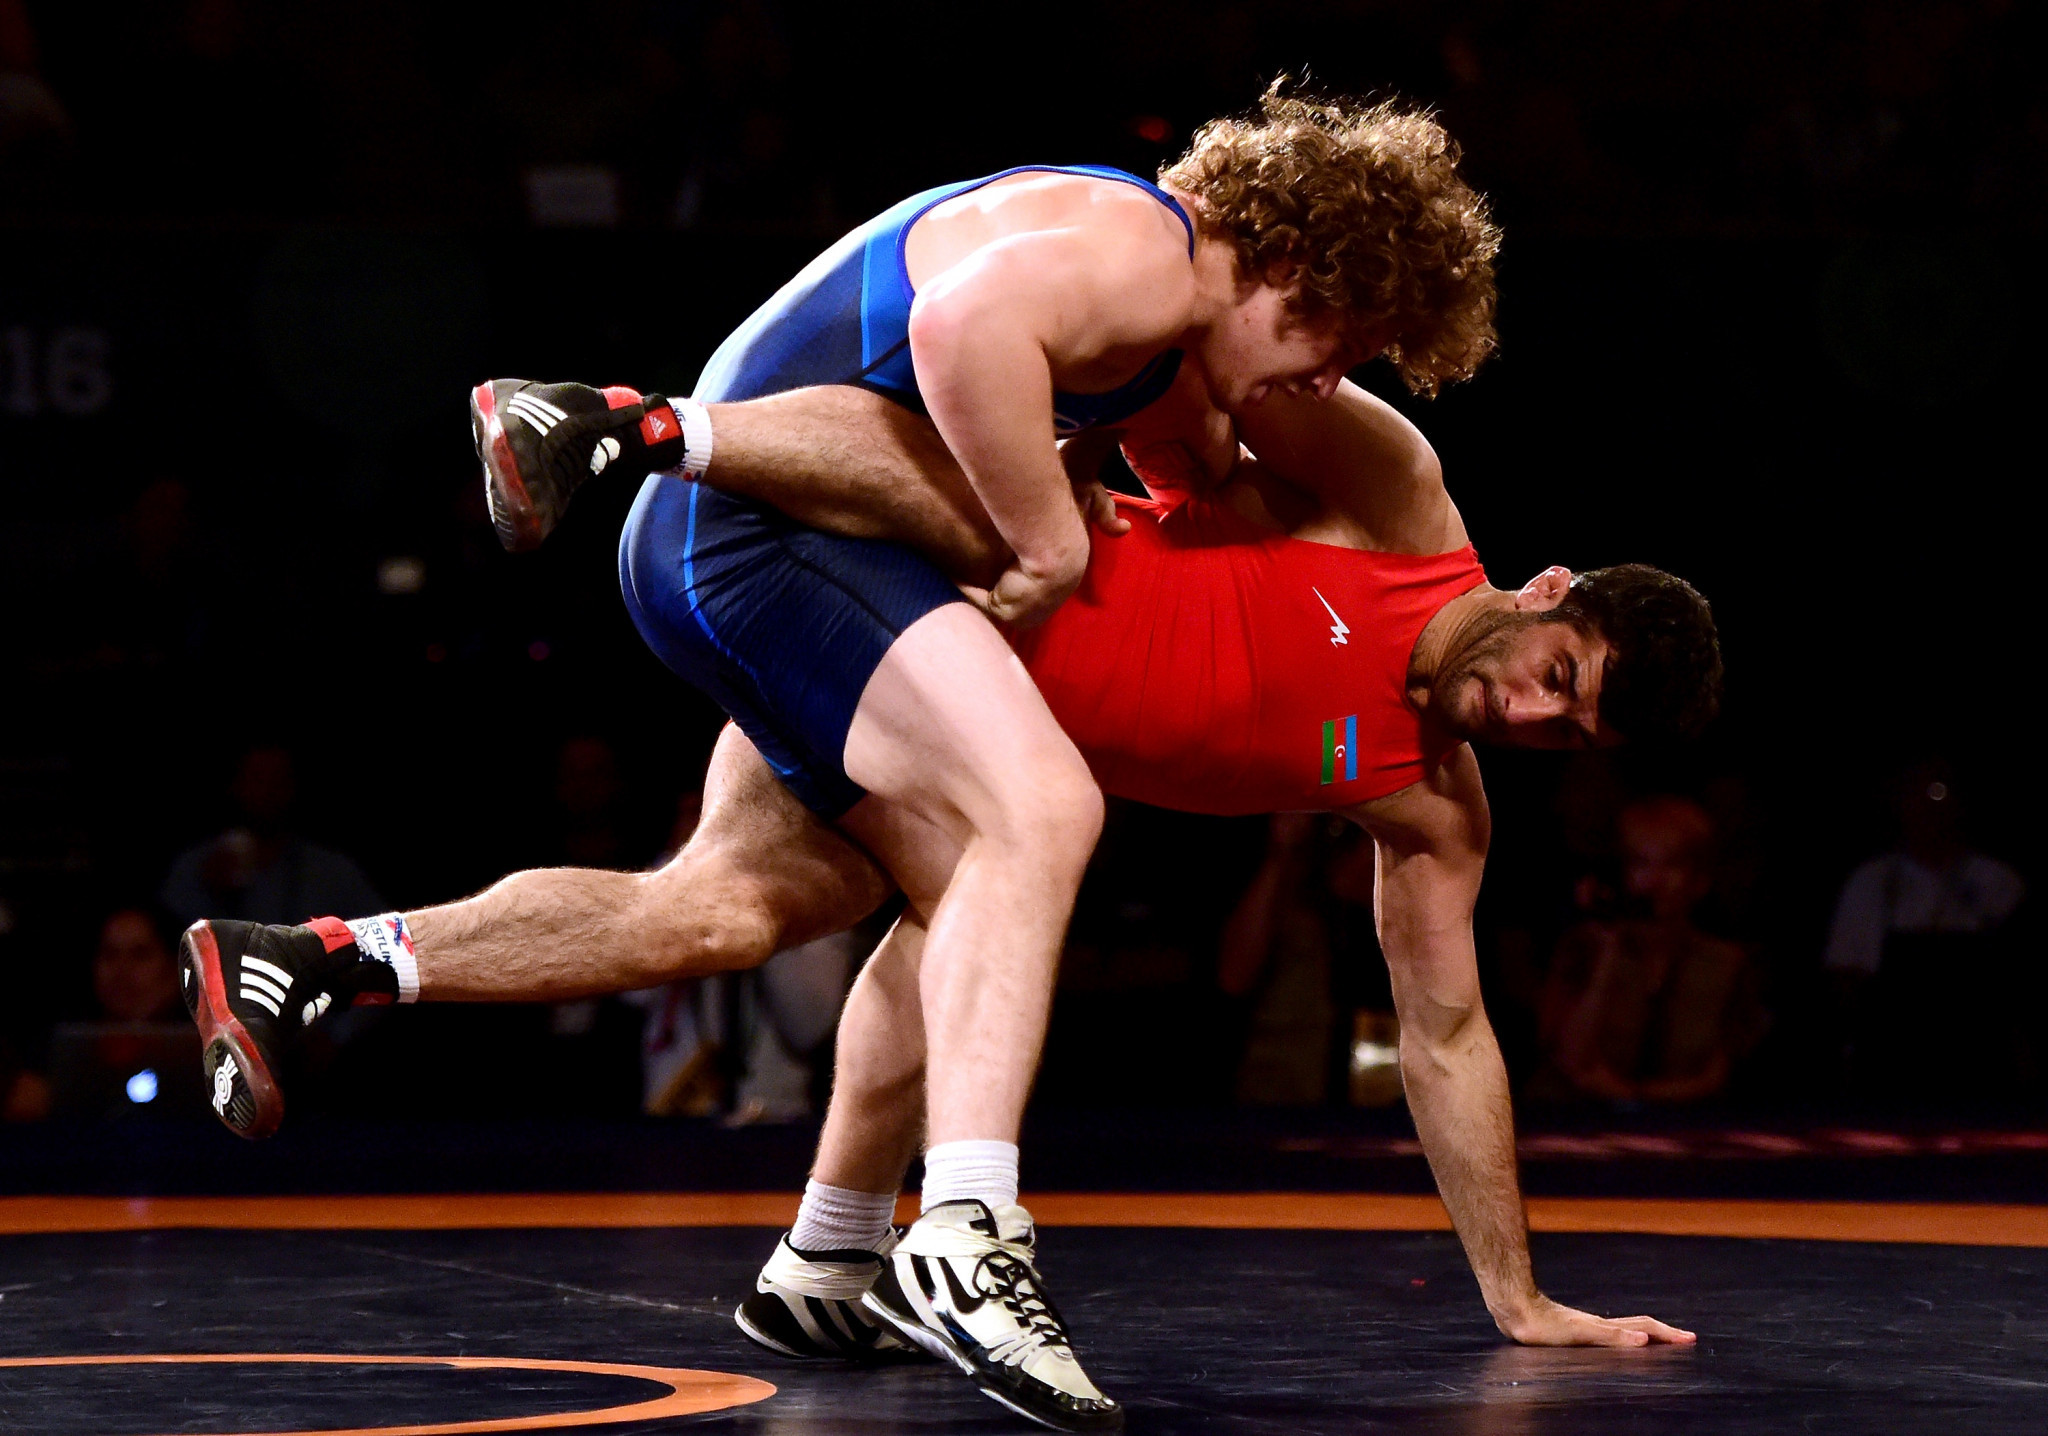 The Under-23 Wrestling World Championships have been cancelled due to COVID-19 ©Getty Images